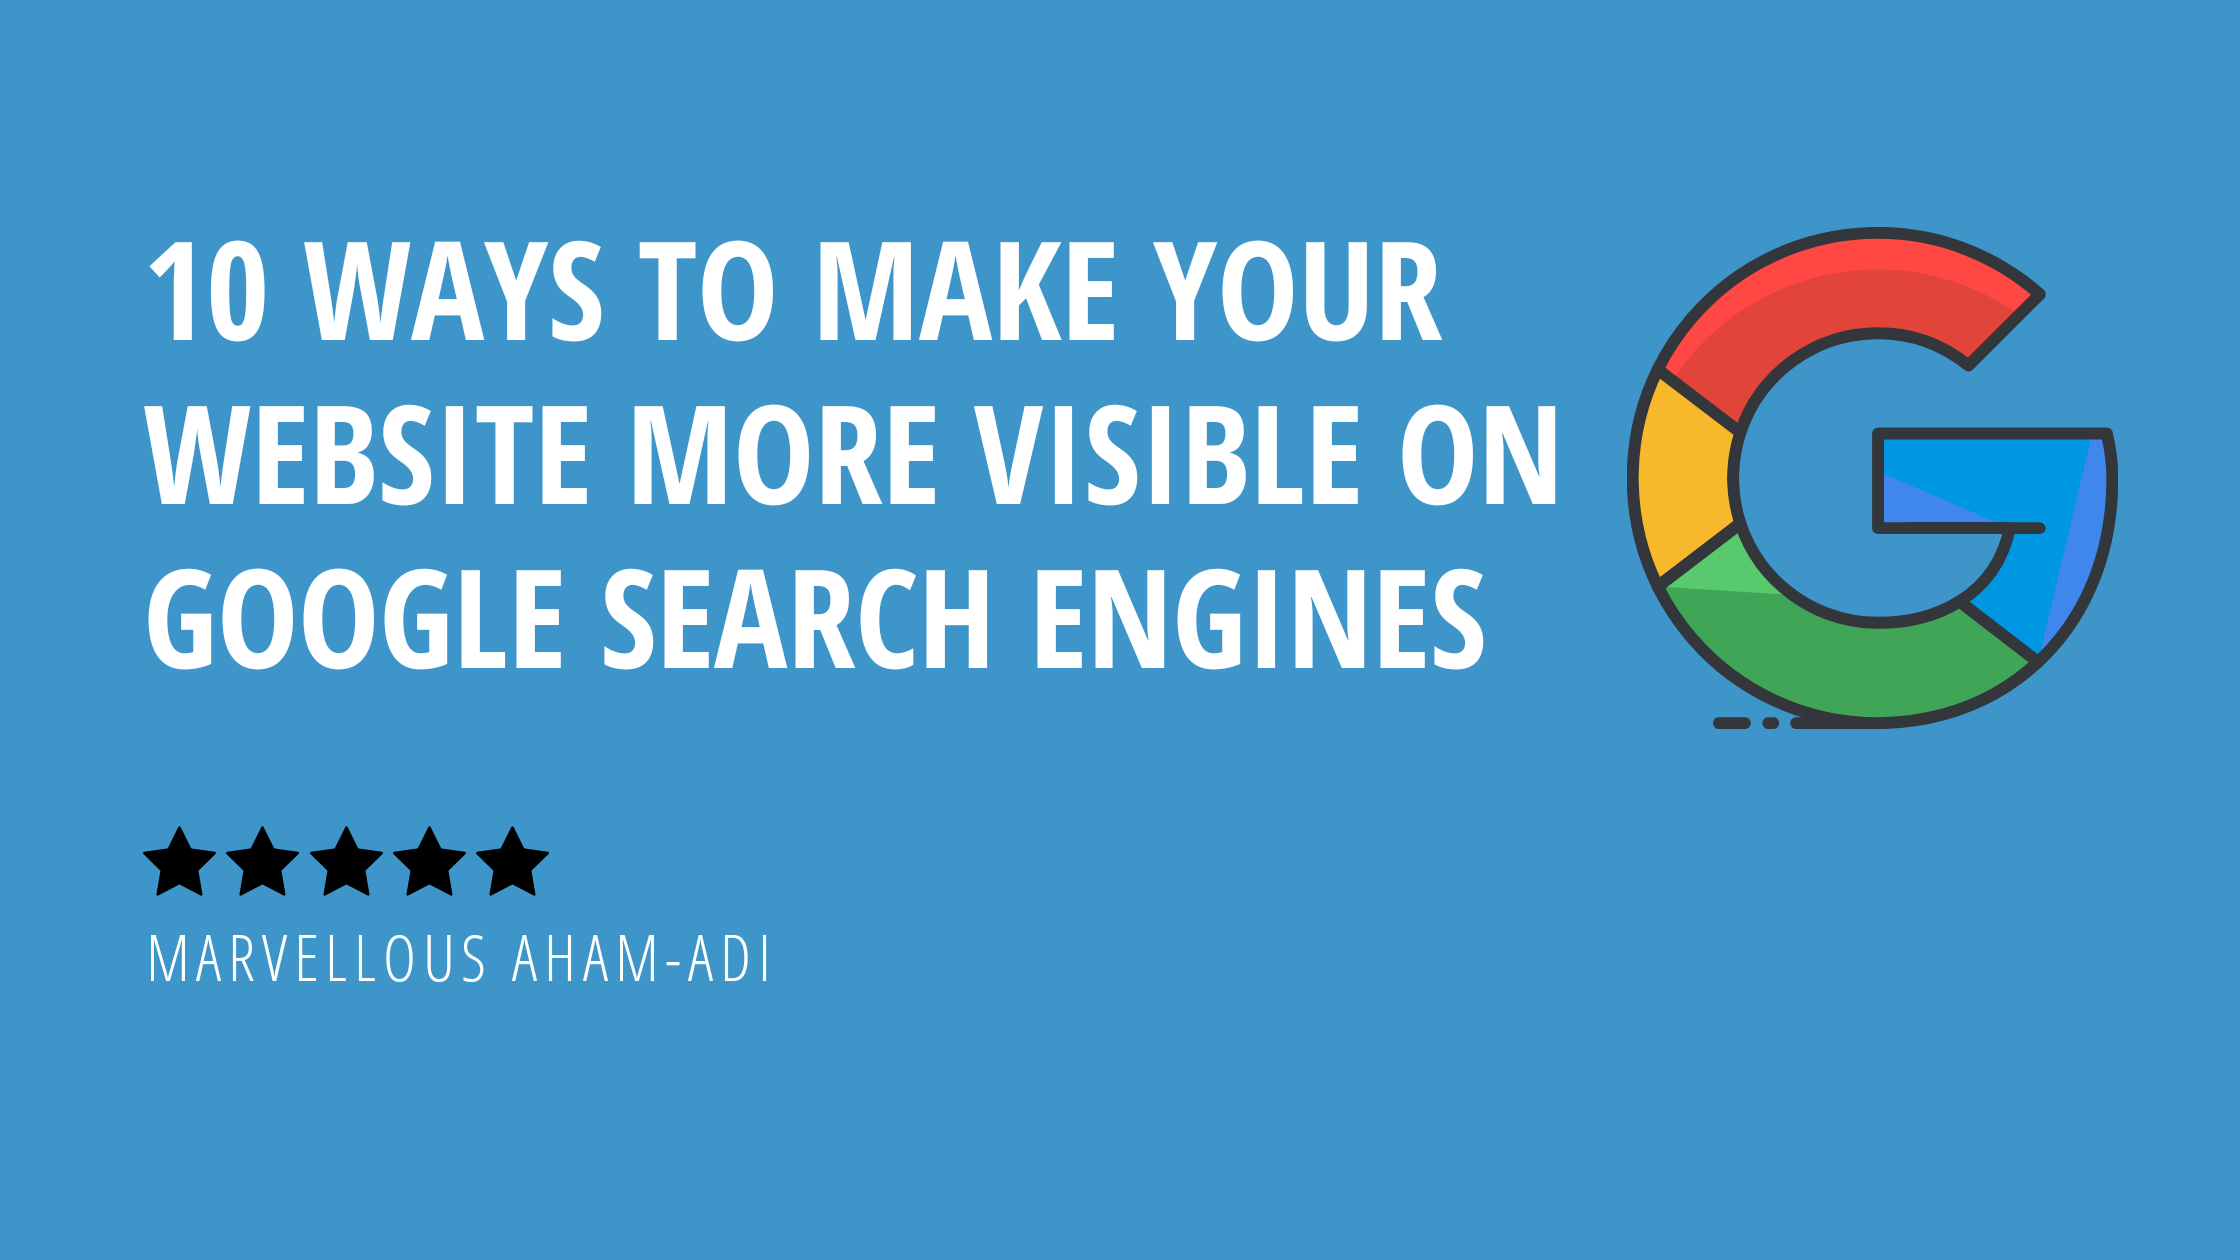 10 Ways To Make Your Website More Visible On Google Search Engines